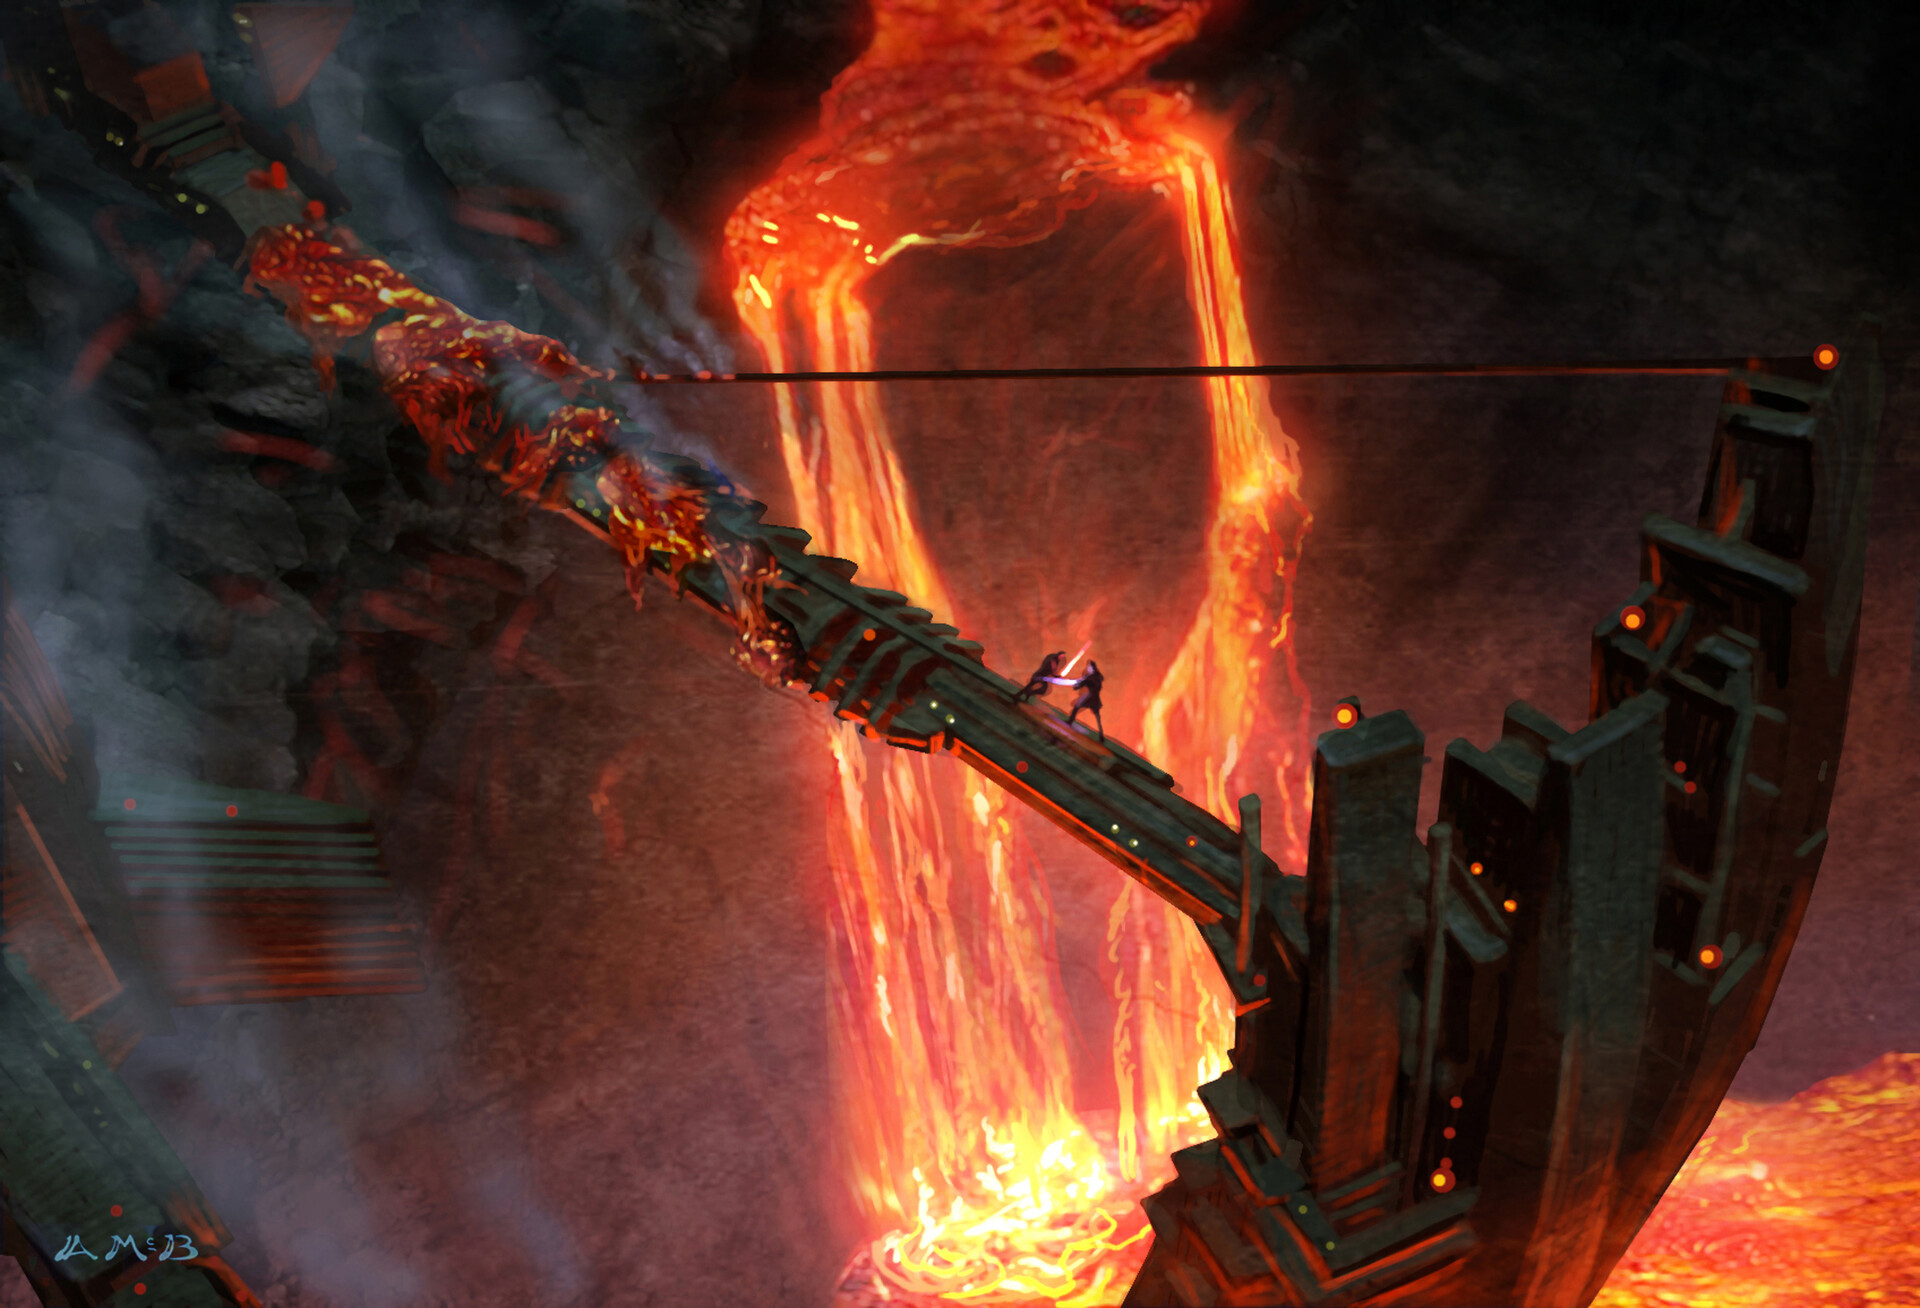 Artstation Star Wars Revenge Of The Sith 2005 Concept Of Obi Wan Dueling Anakin On Lava Collection Arm Aaron Mcbride